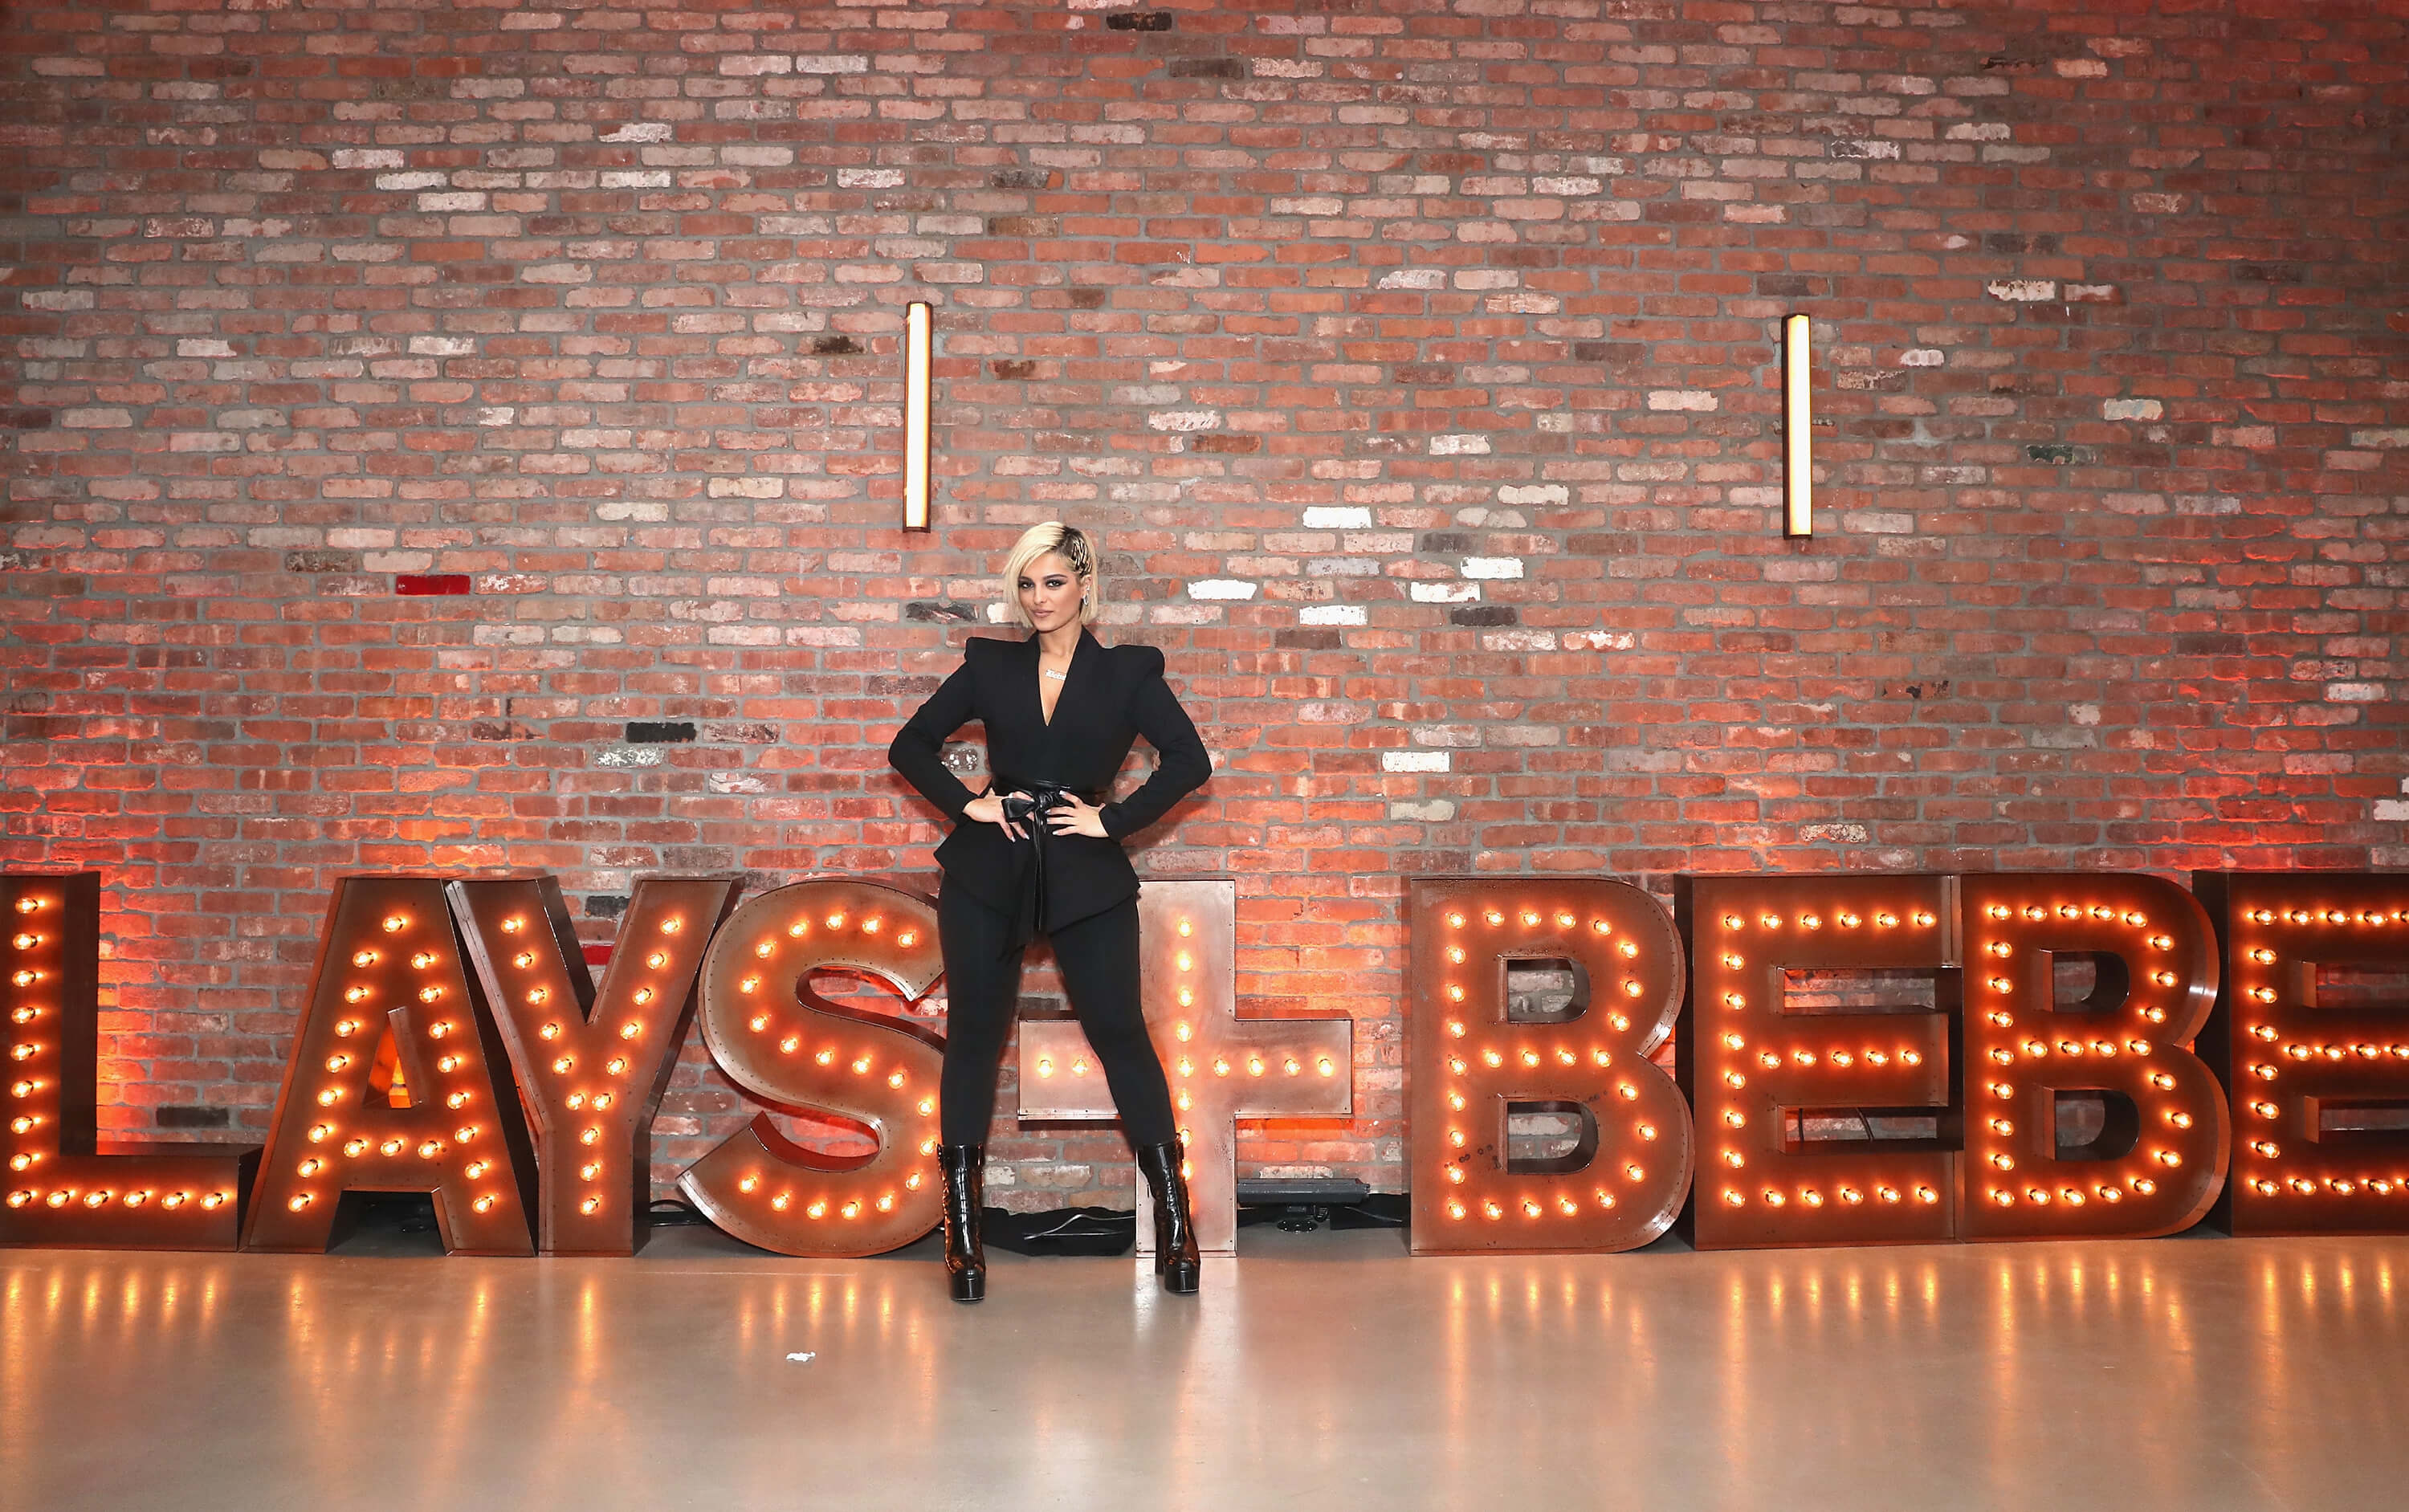 To become more culturally relevant to its customers, Lay's took its first steps into the music industry, partnering with recording artist and music superstar Bebe Rexha, with its launch of Lay's music-inspired flavors.